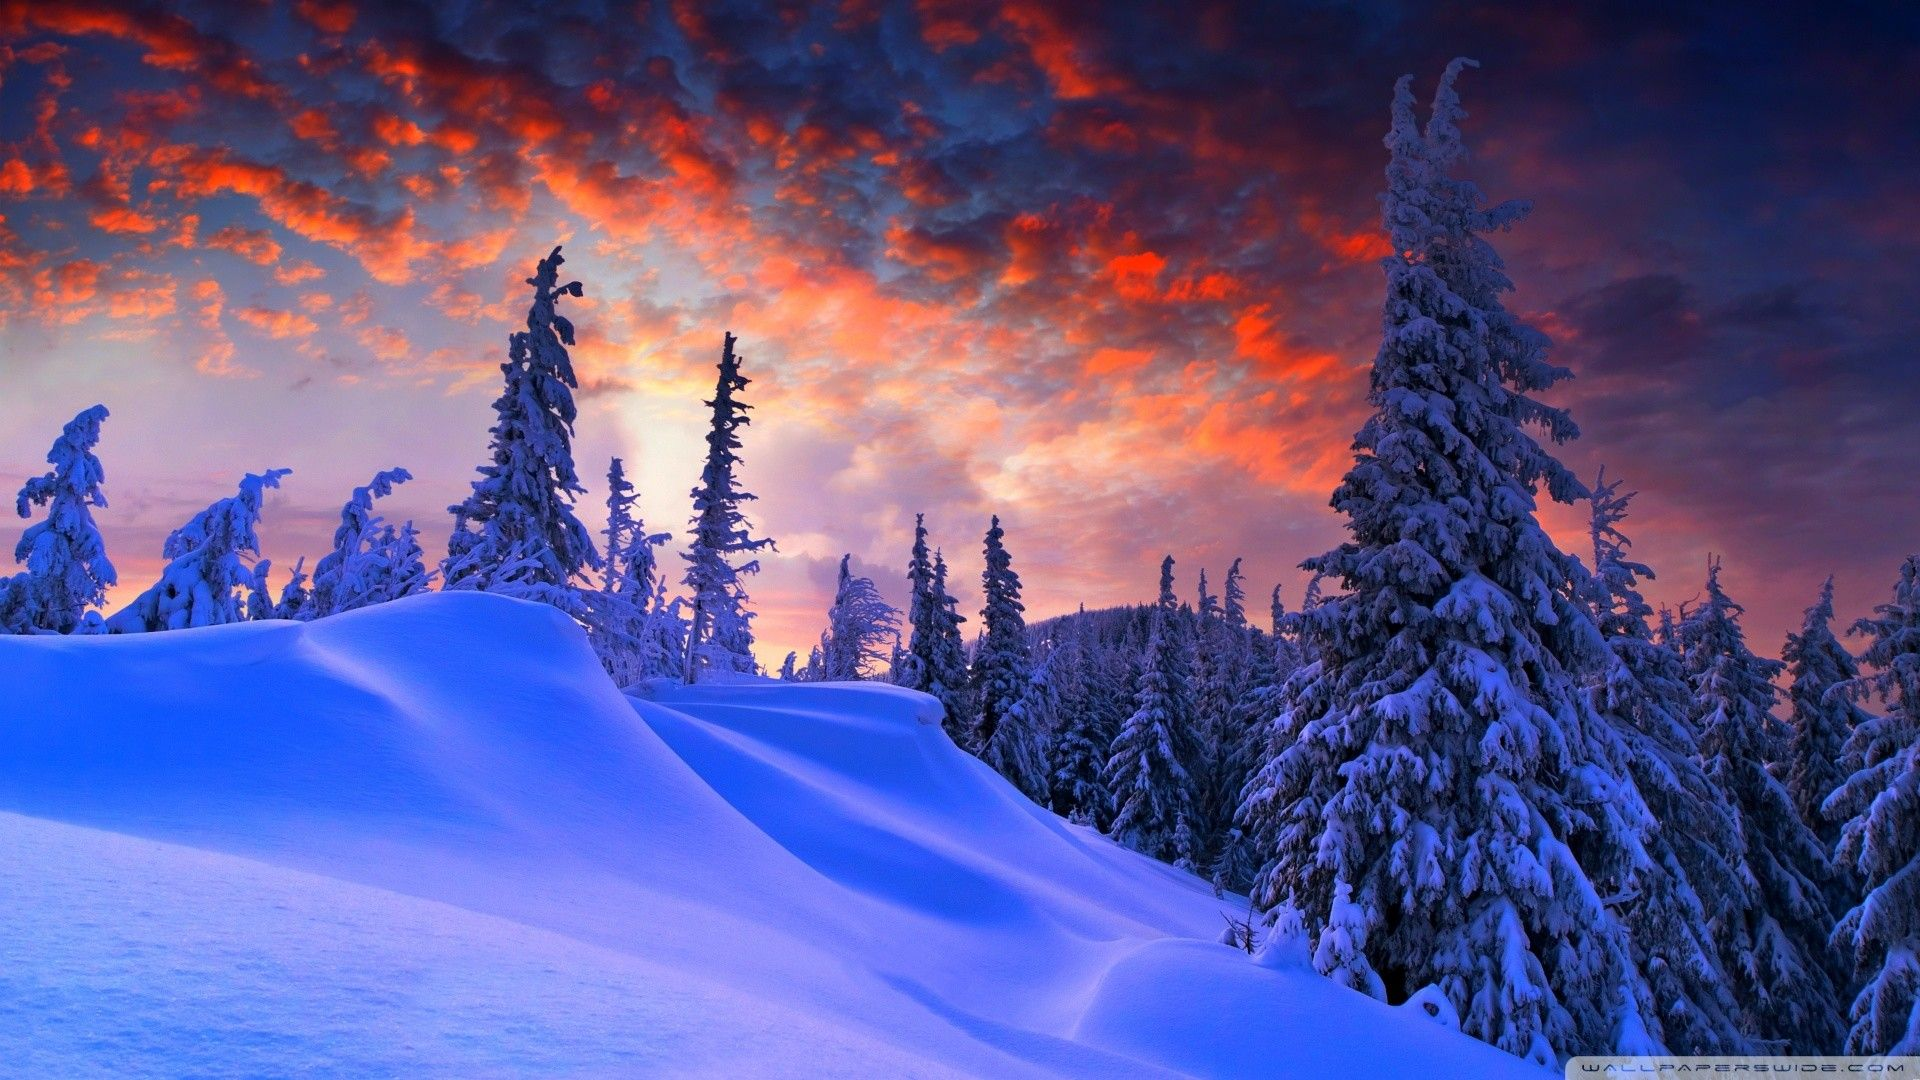 Hd Winter Wallpapers Top Free Hd Winter Backgrounds